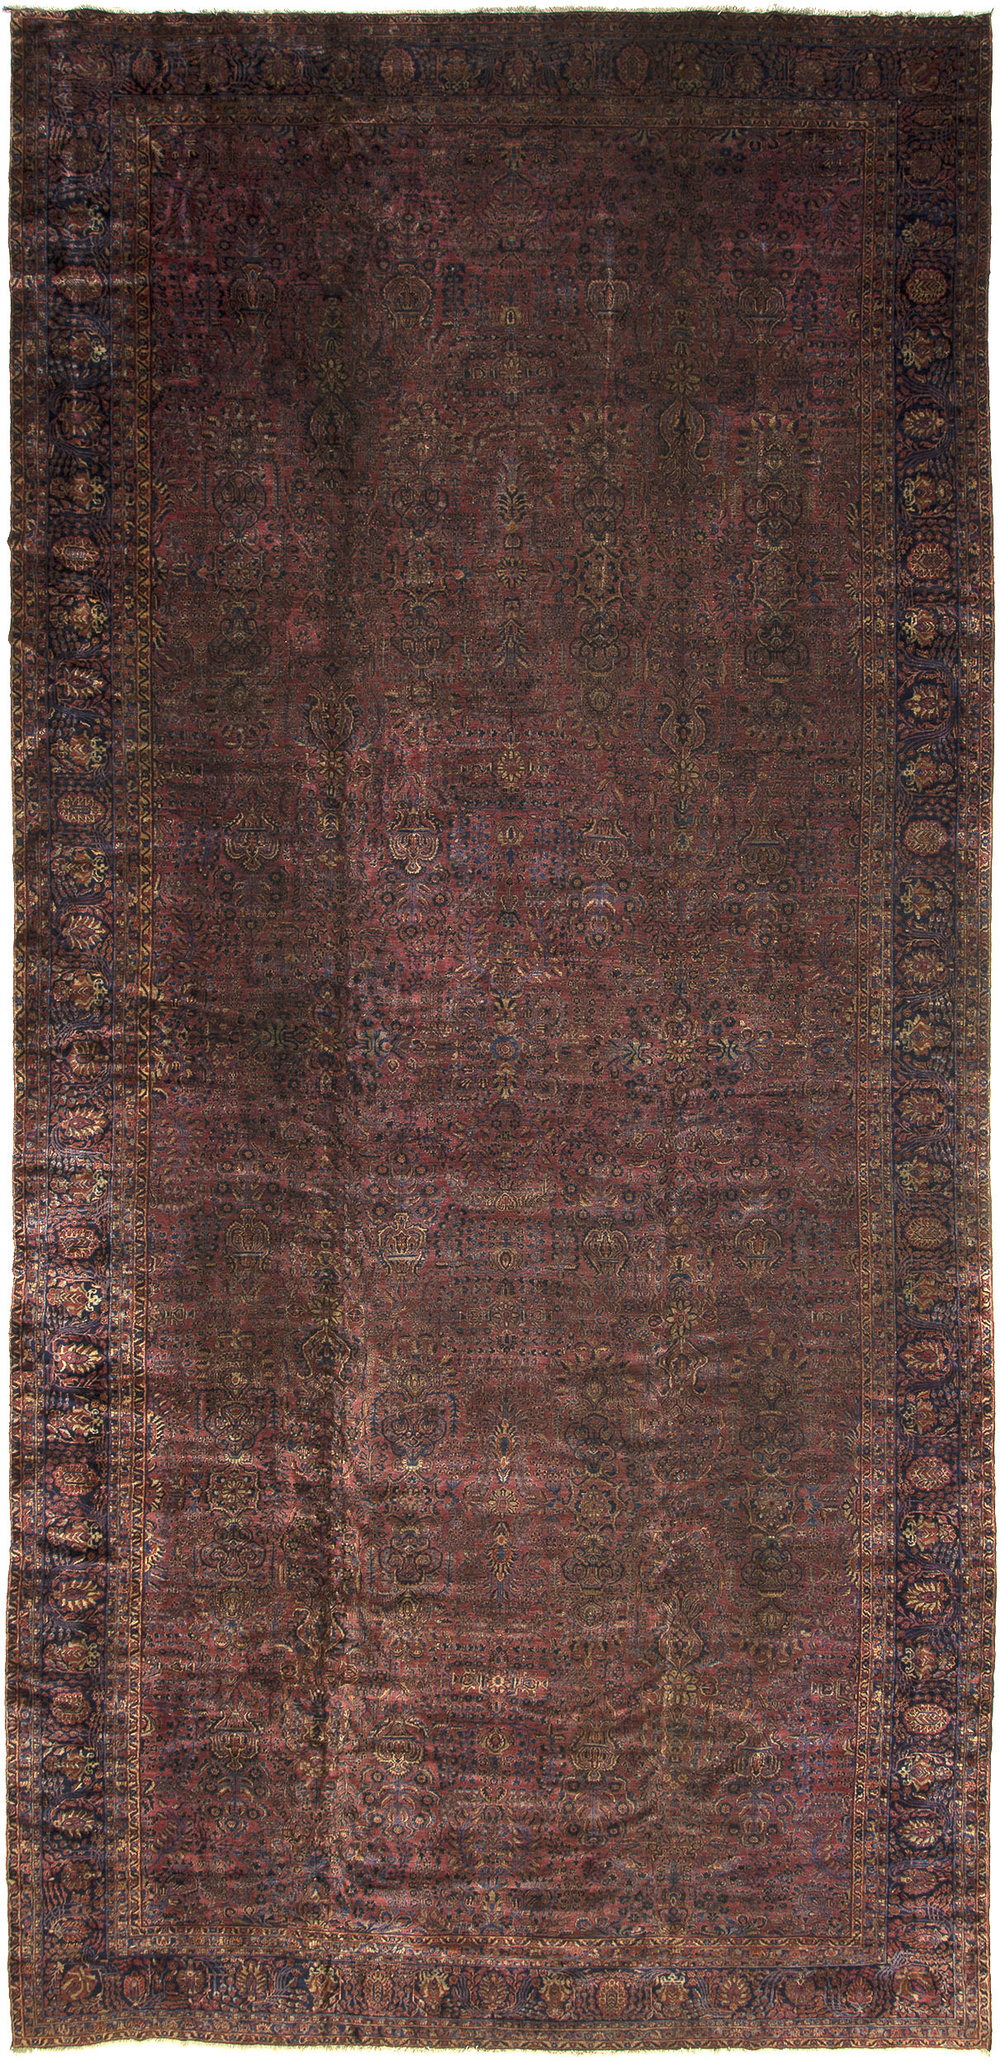 "Sarouk Carpet 28' 8"" x 13' 3"""